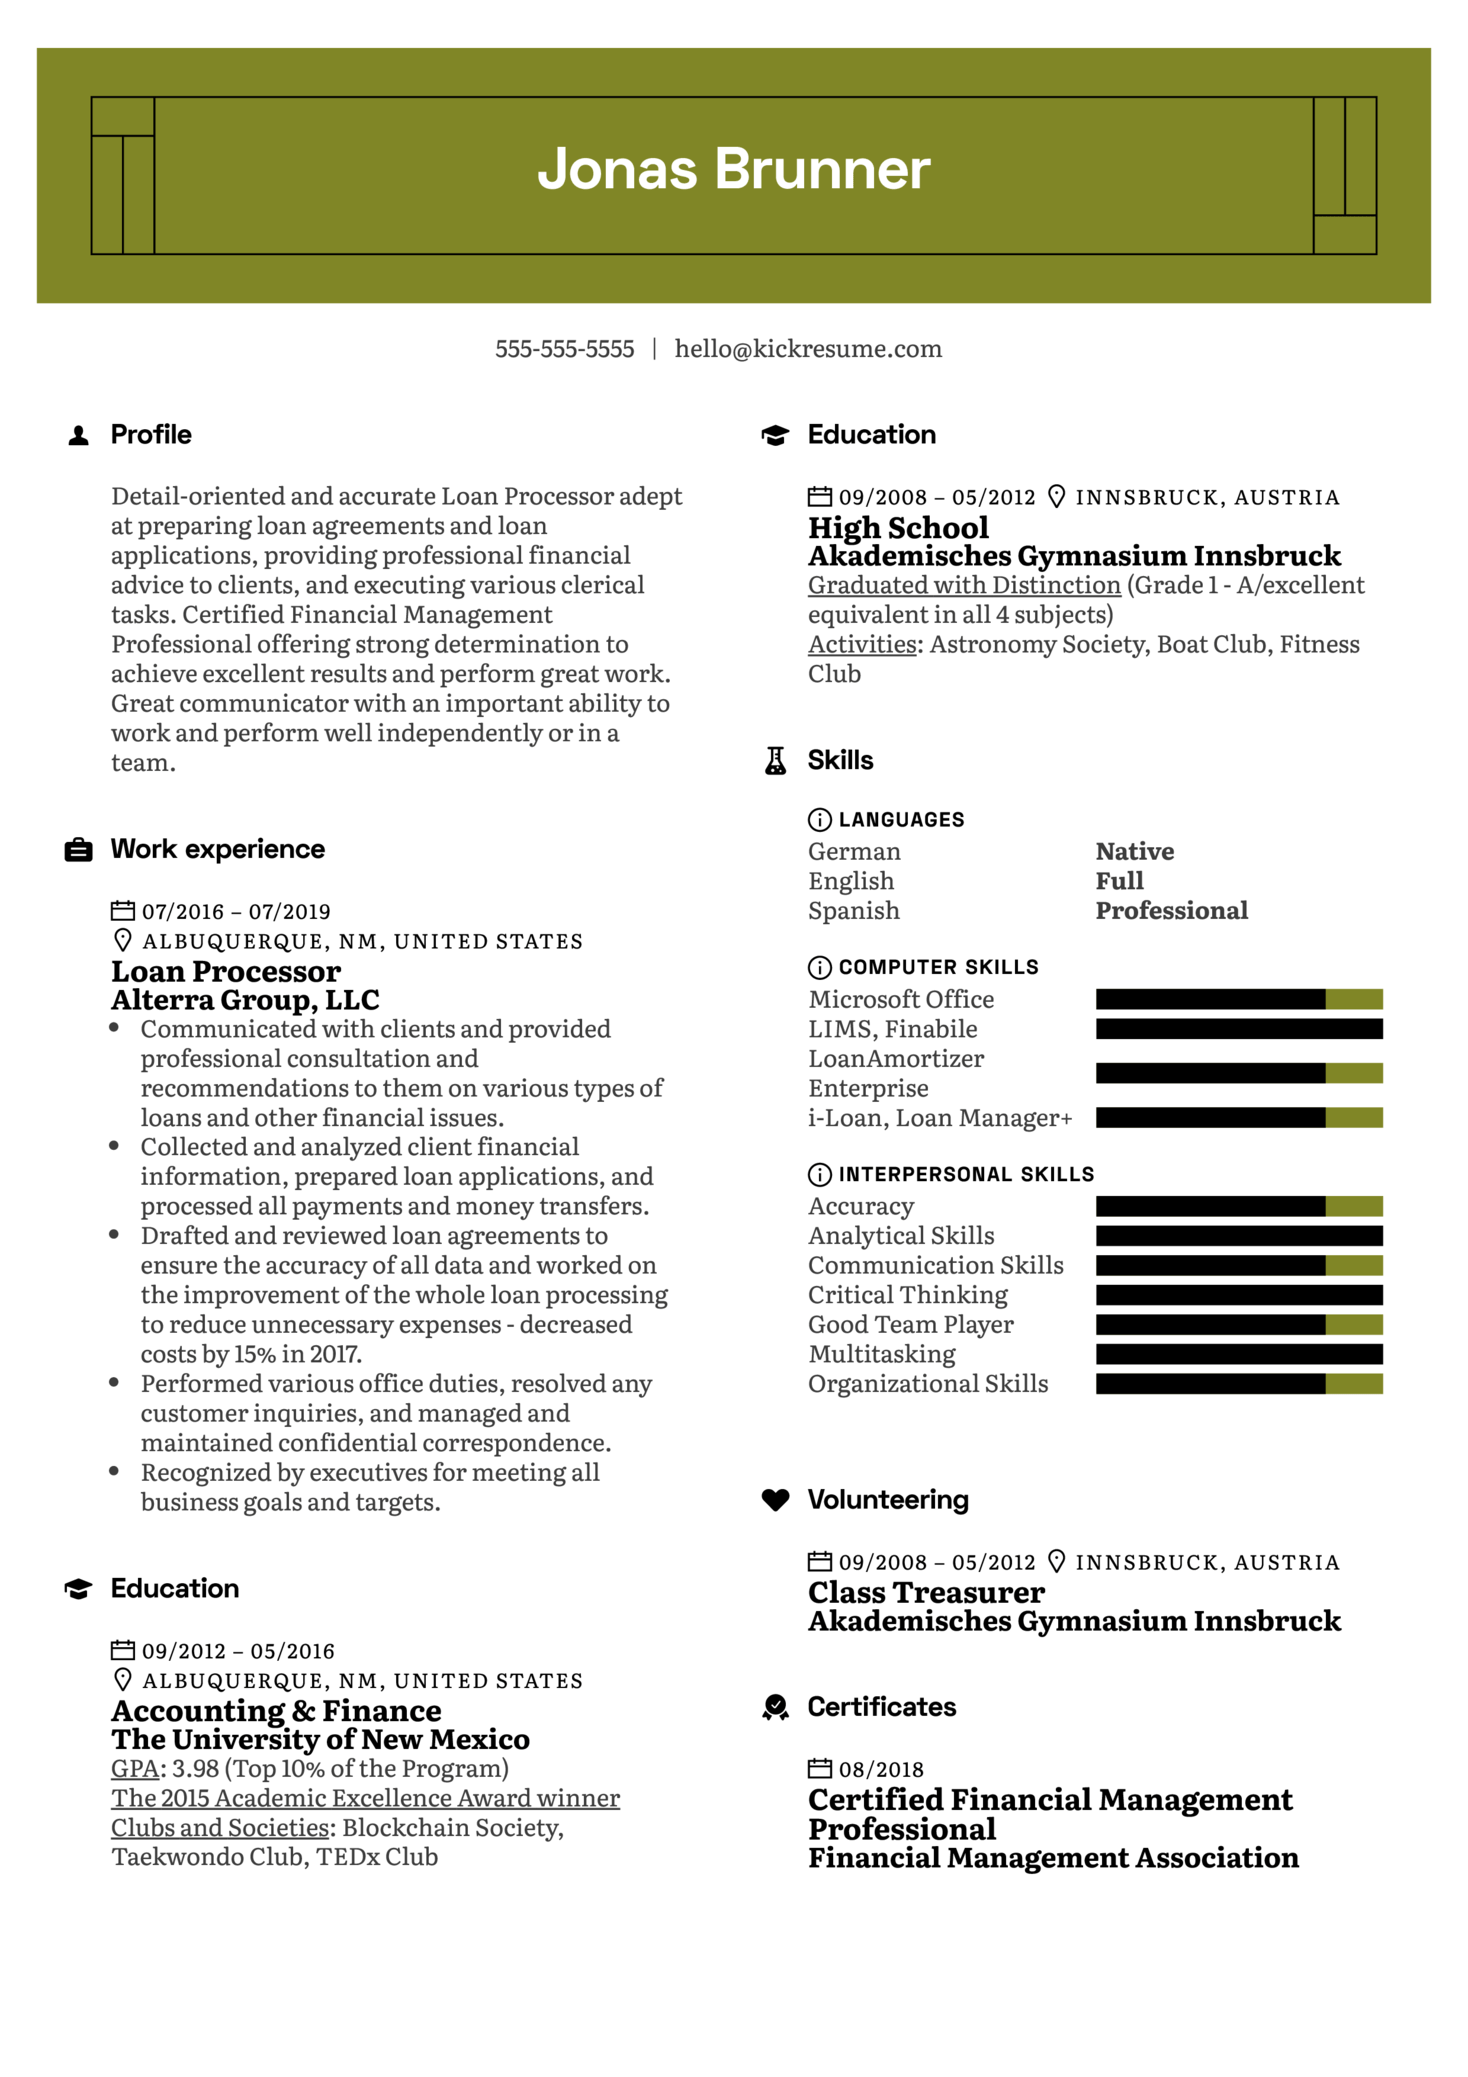 Loan Processor Resume Example Kickresume